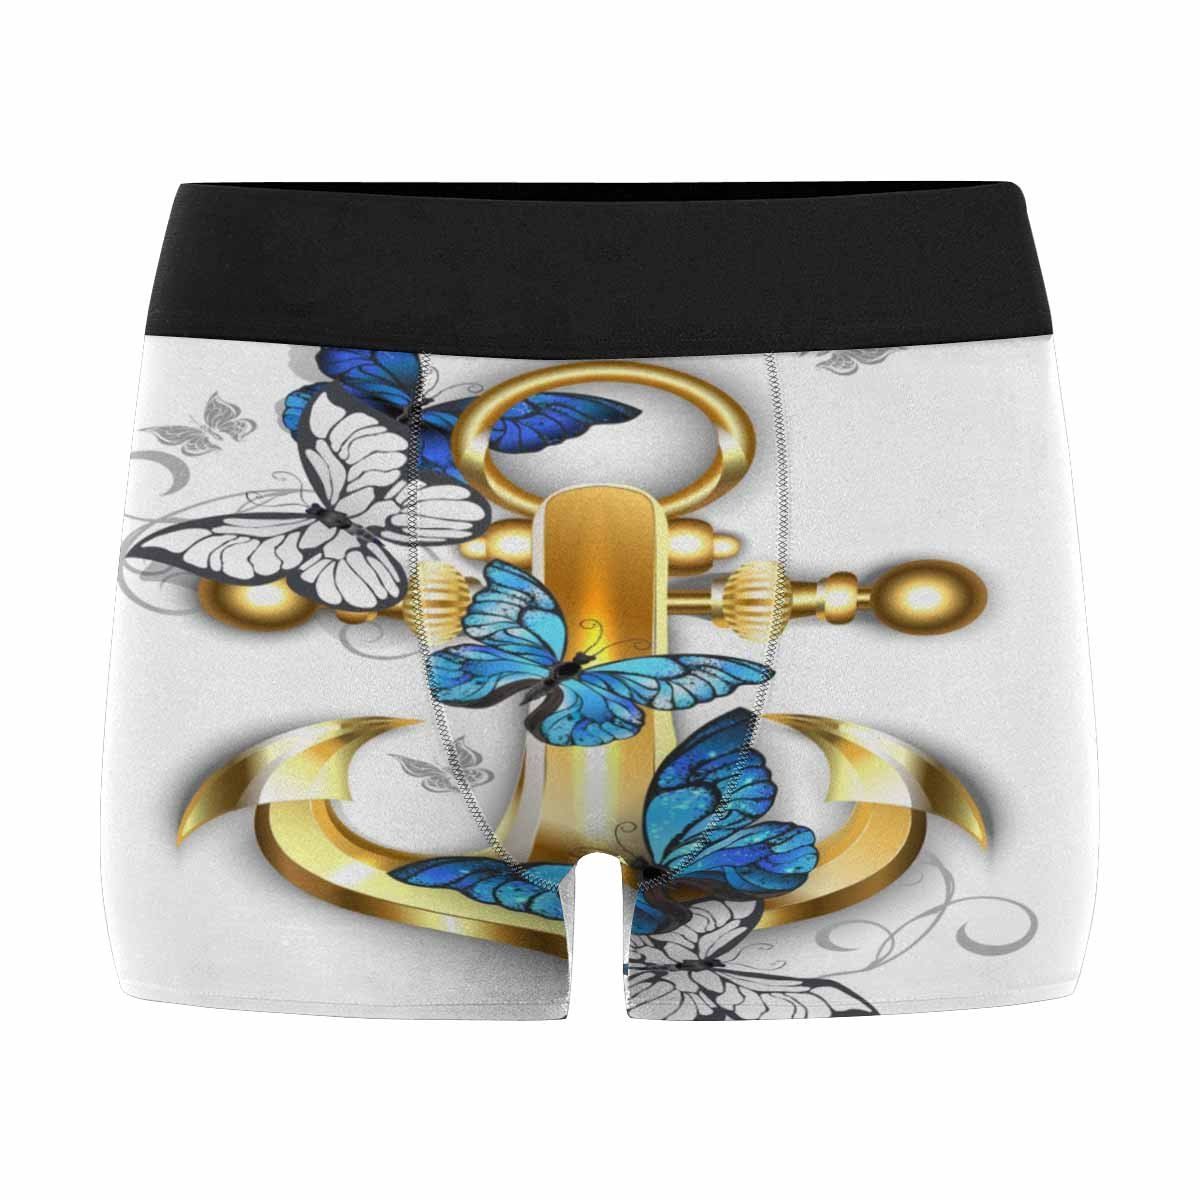 InterestPrint Men's Boxer Briefs Gold, Jewelry Anchor with Morpho Butterflies S